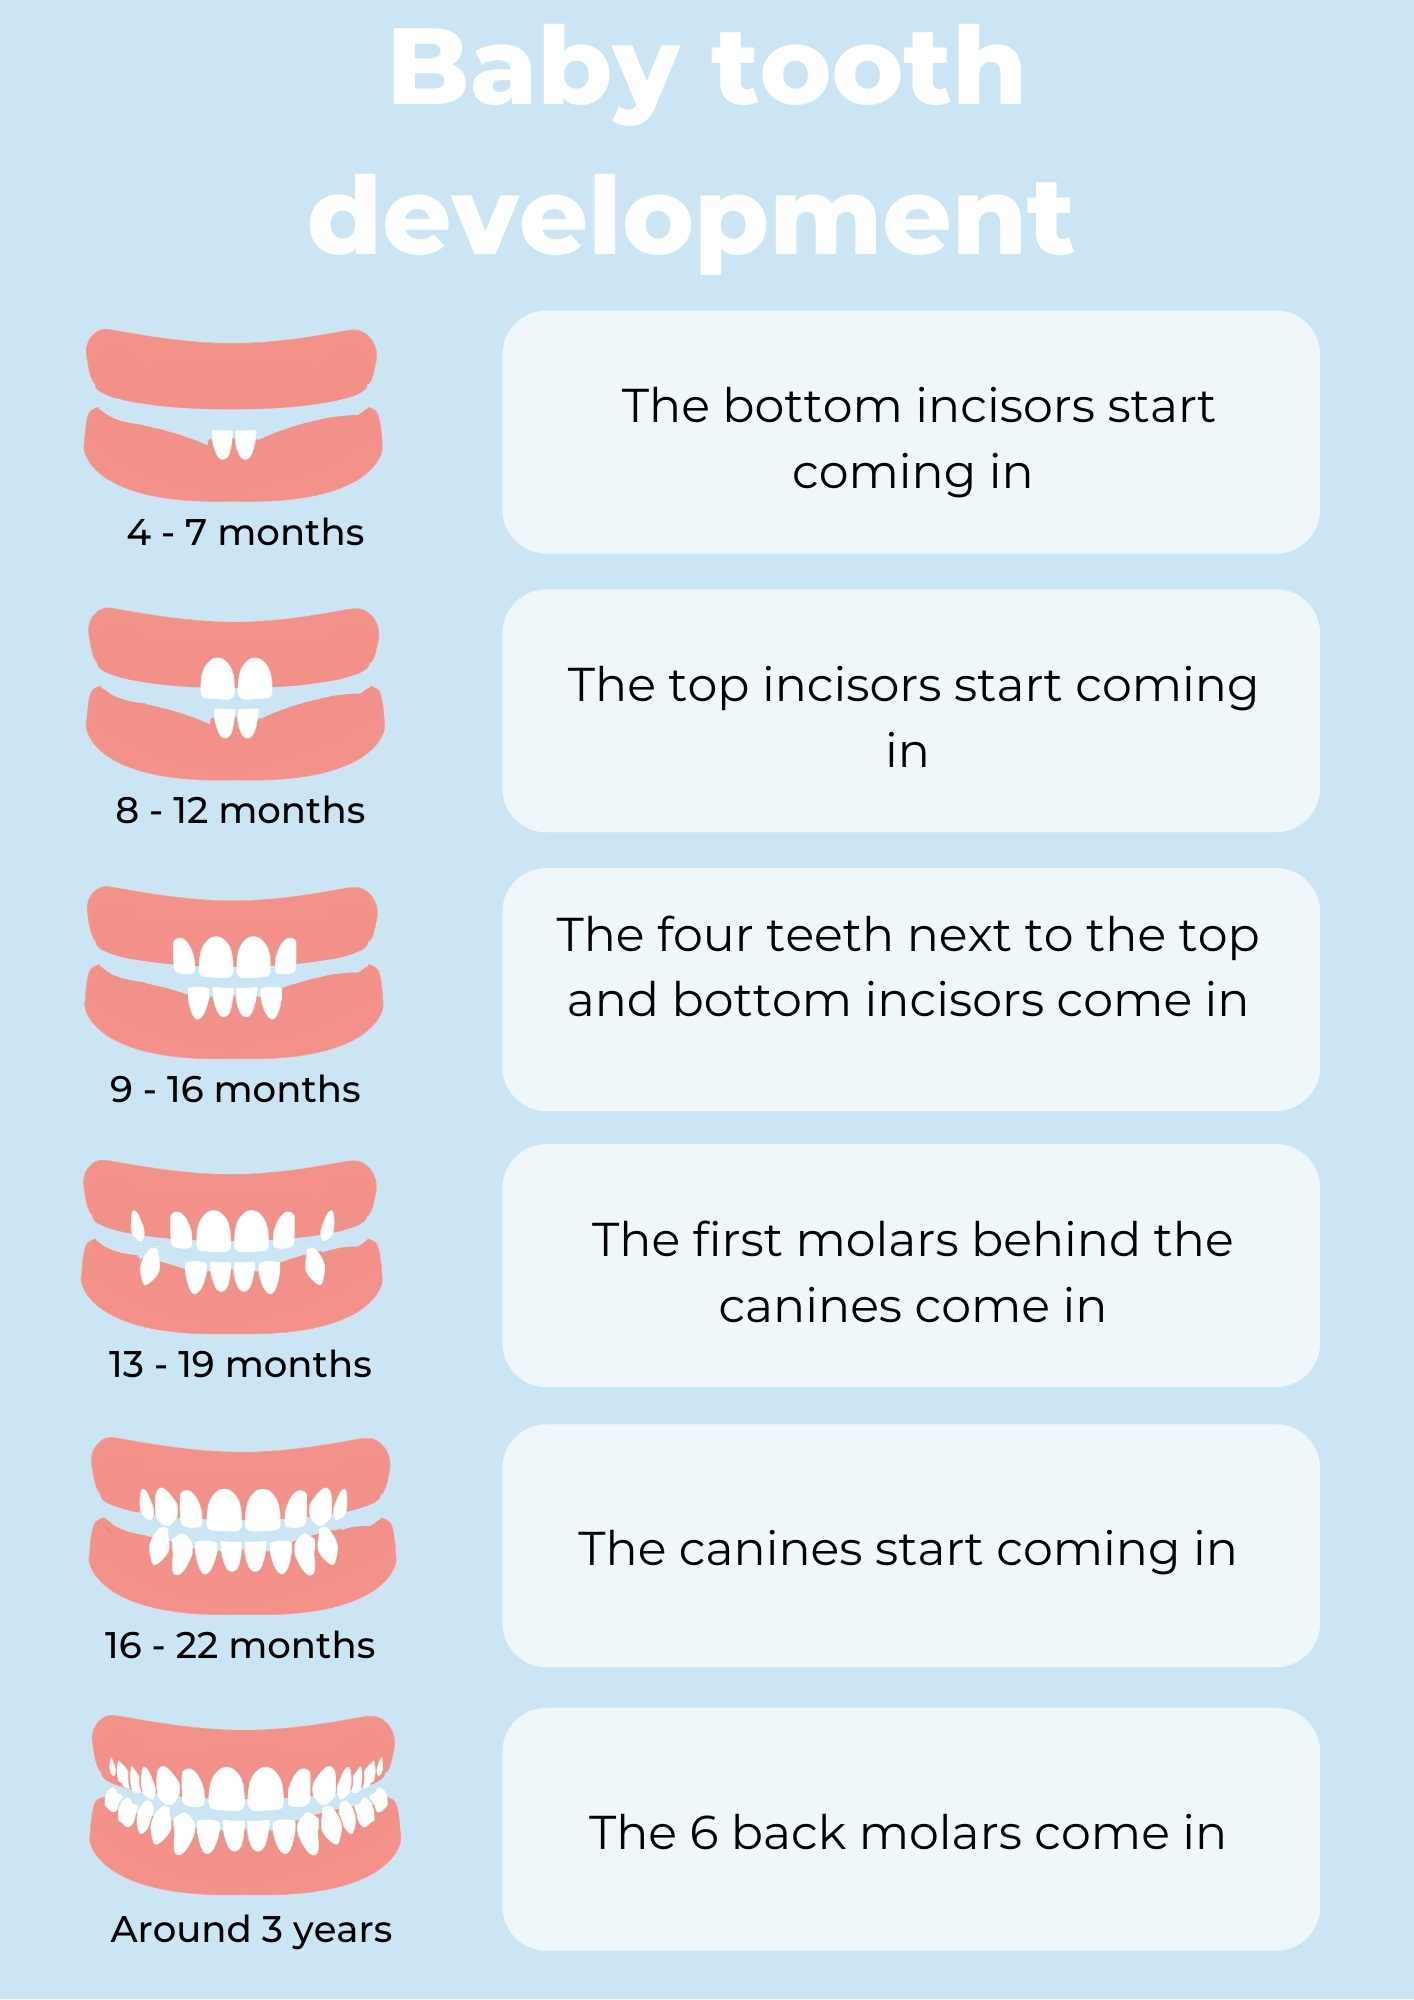 when do the first teeth come in?